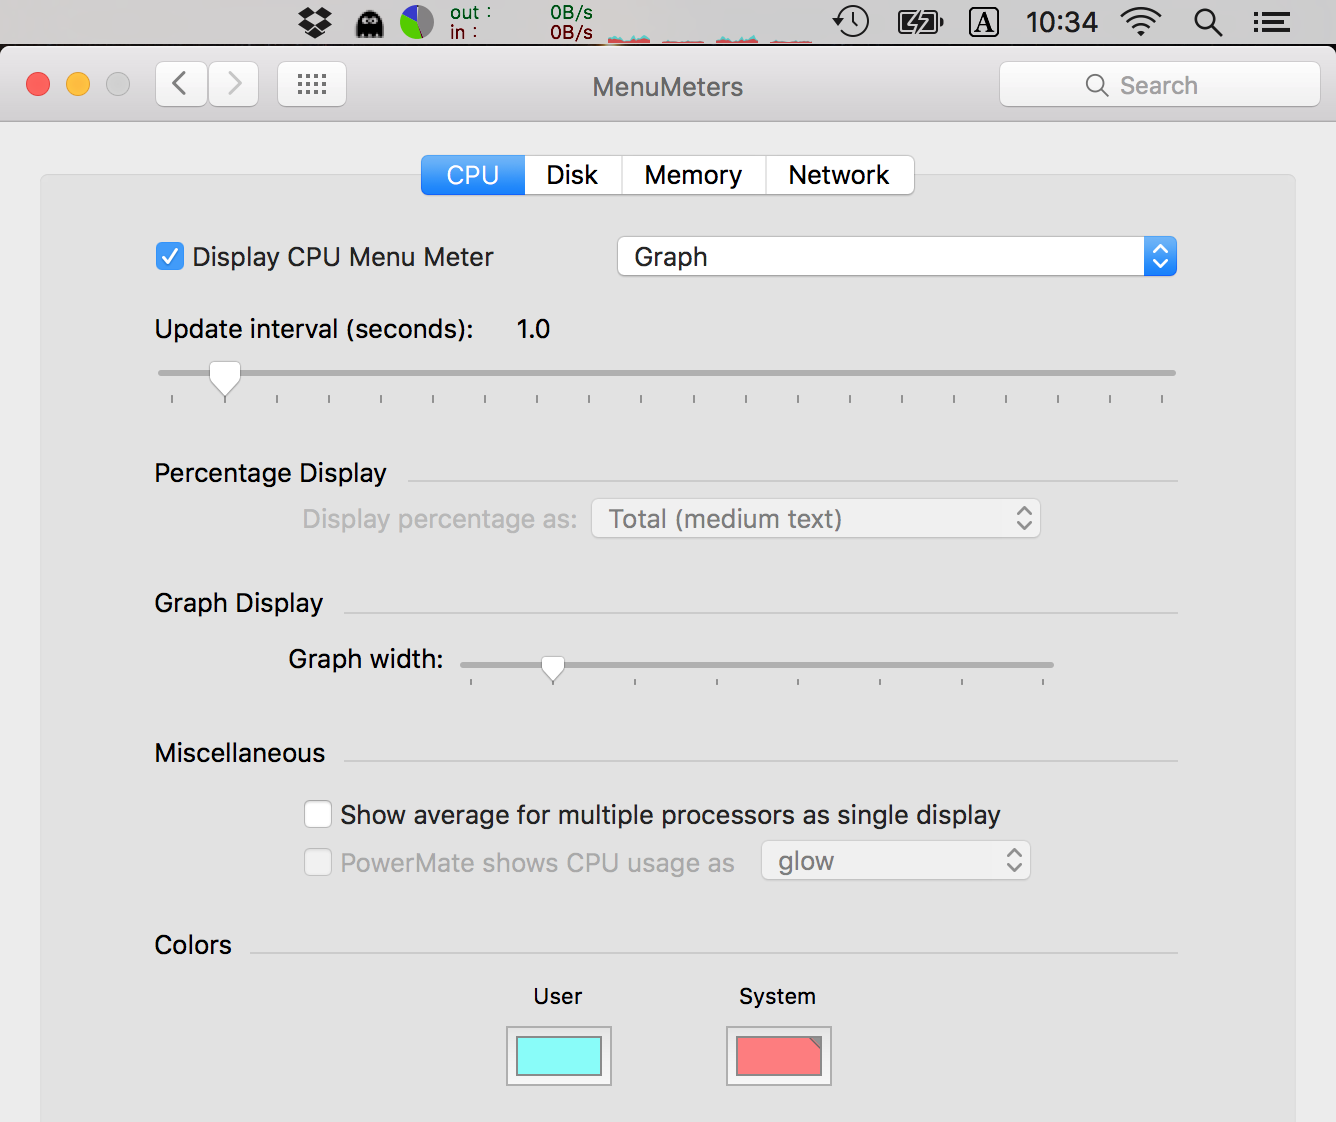 MenuMeters for OS X El Capitan 10 11 and later